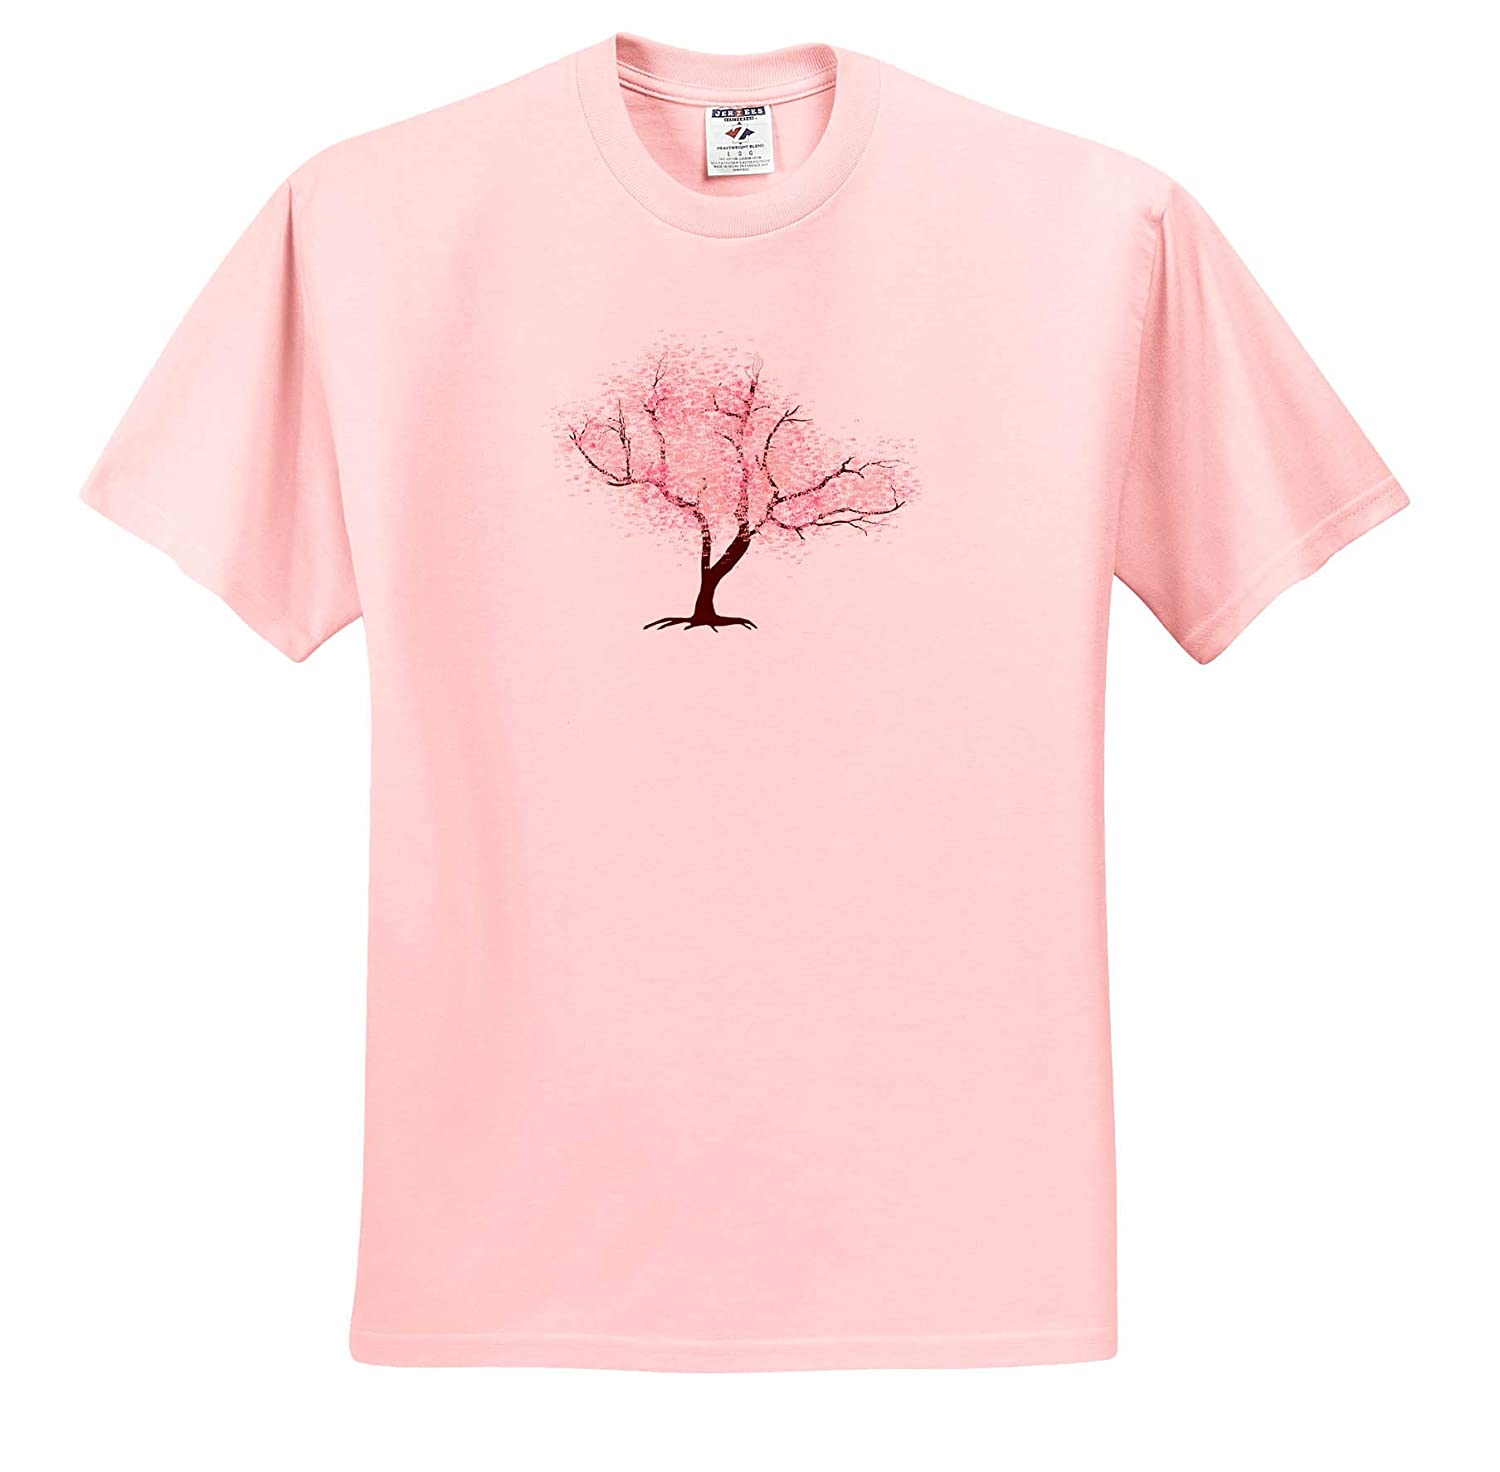 Adult T-Shirt XL Cherry Blossom Tree ts/_310681 3dRose Janna Salak Designs Nature and Spirituality